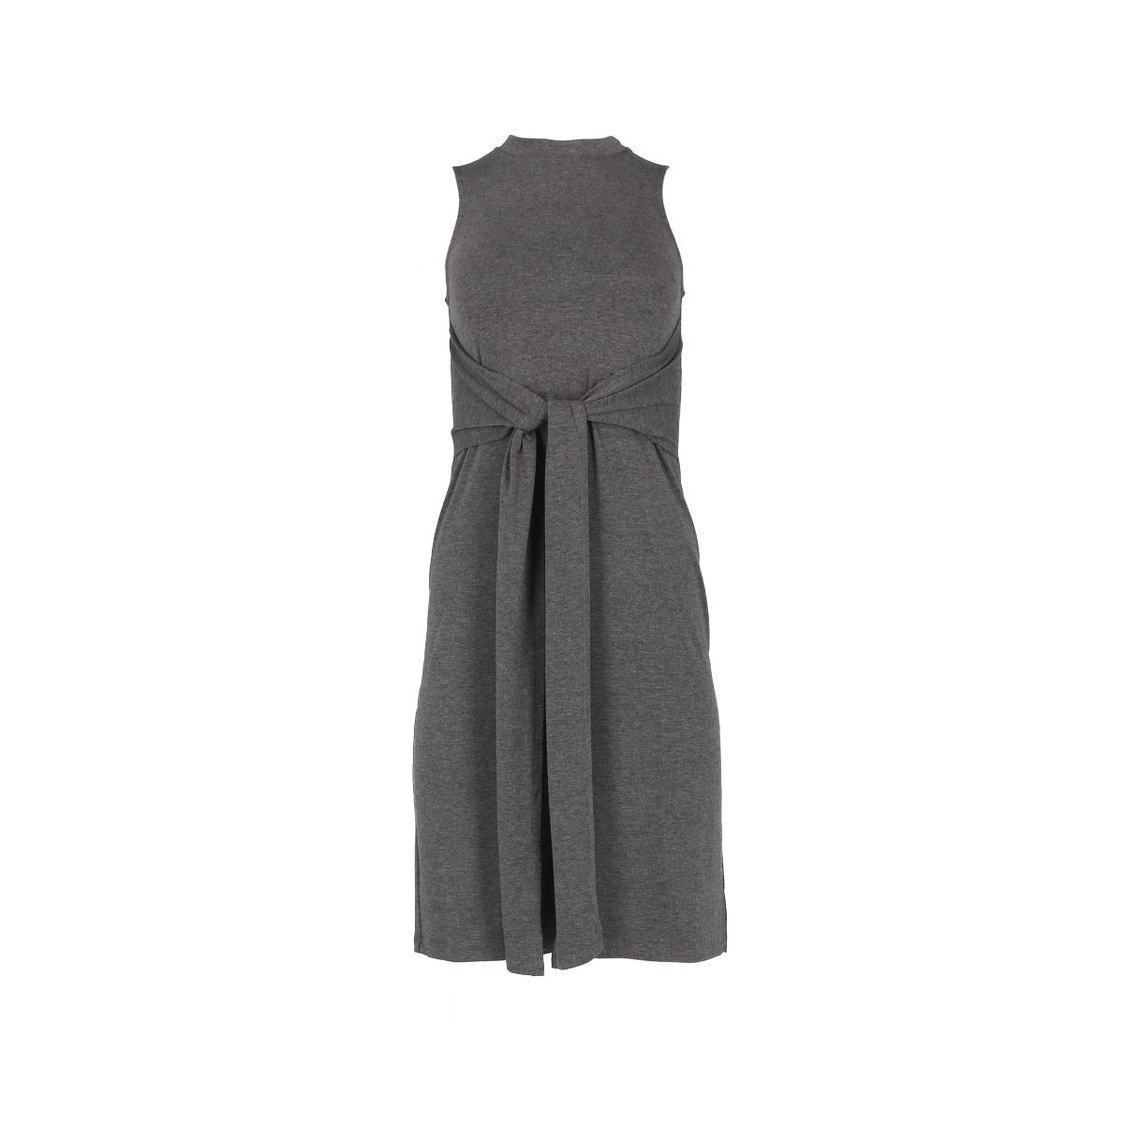 Sleeveless Knit Dress With Long Bow Tie Strap